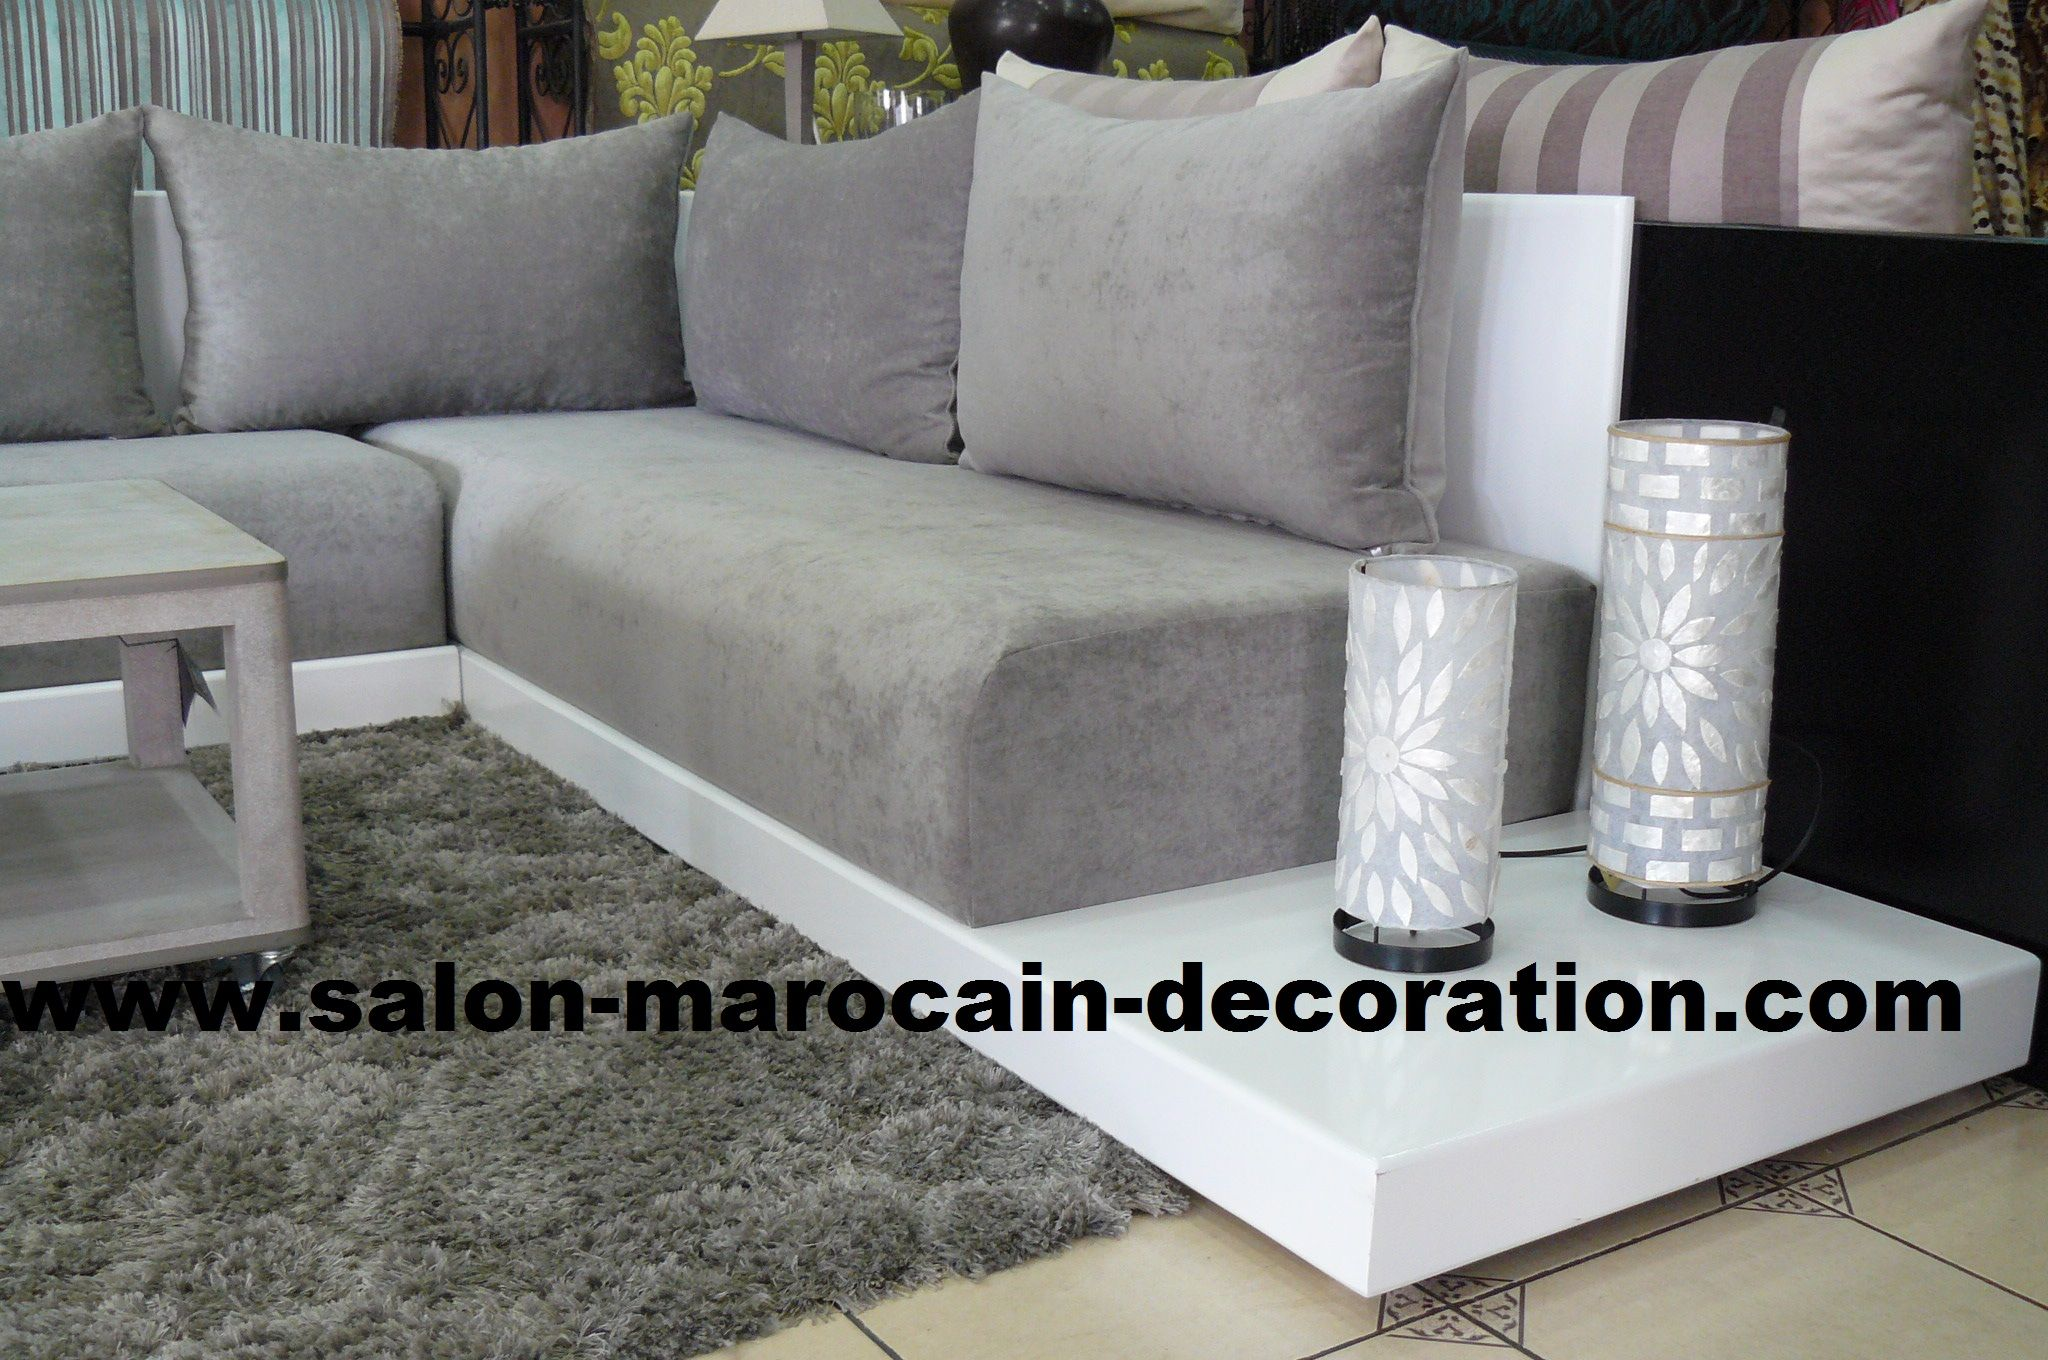 Pin by Amal on Decoration in 2019 | Salon marocain, Décoration salon ...